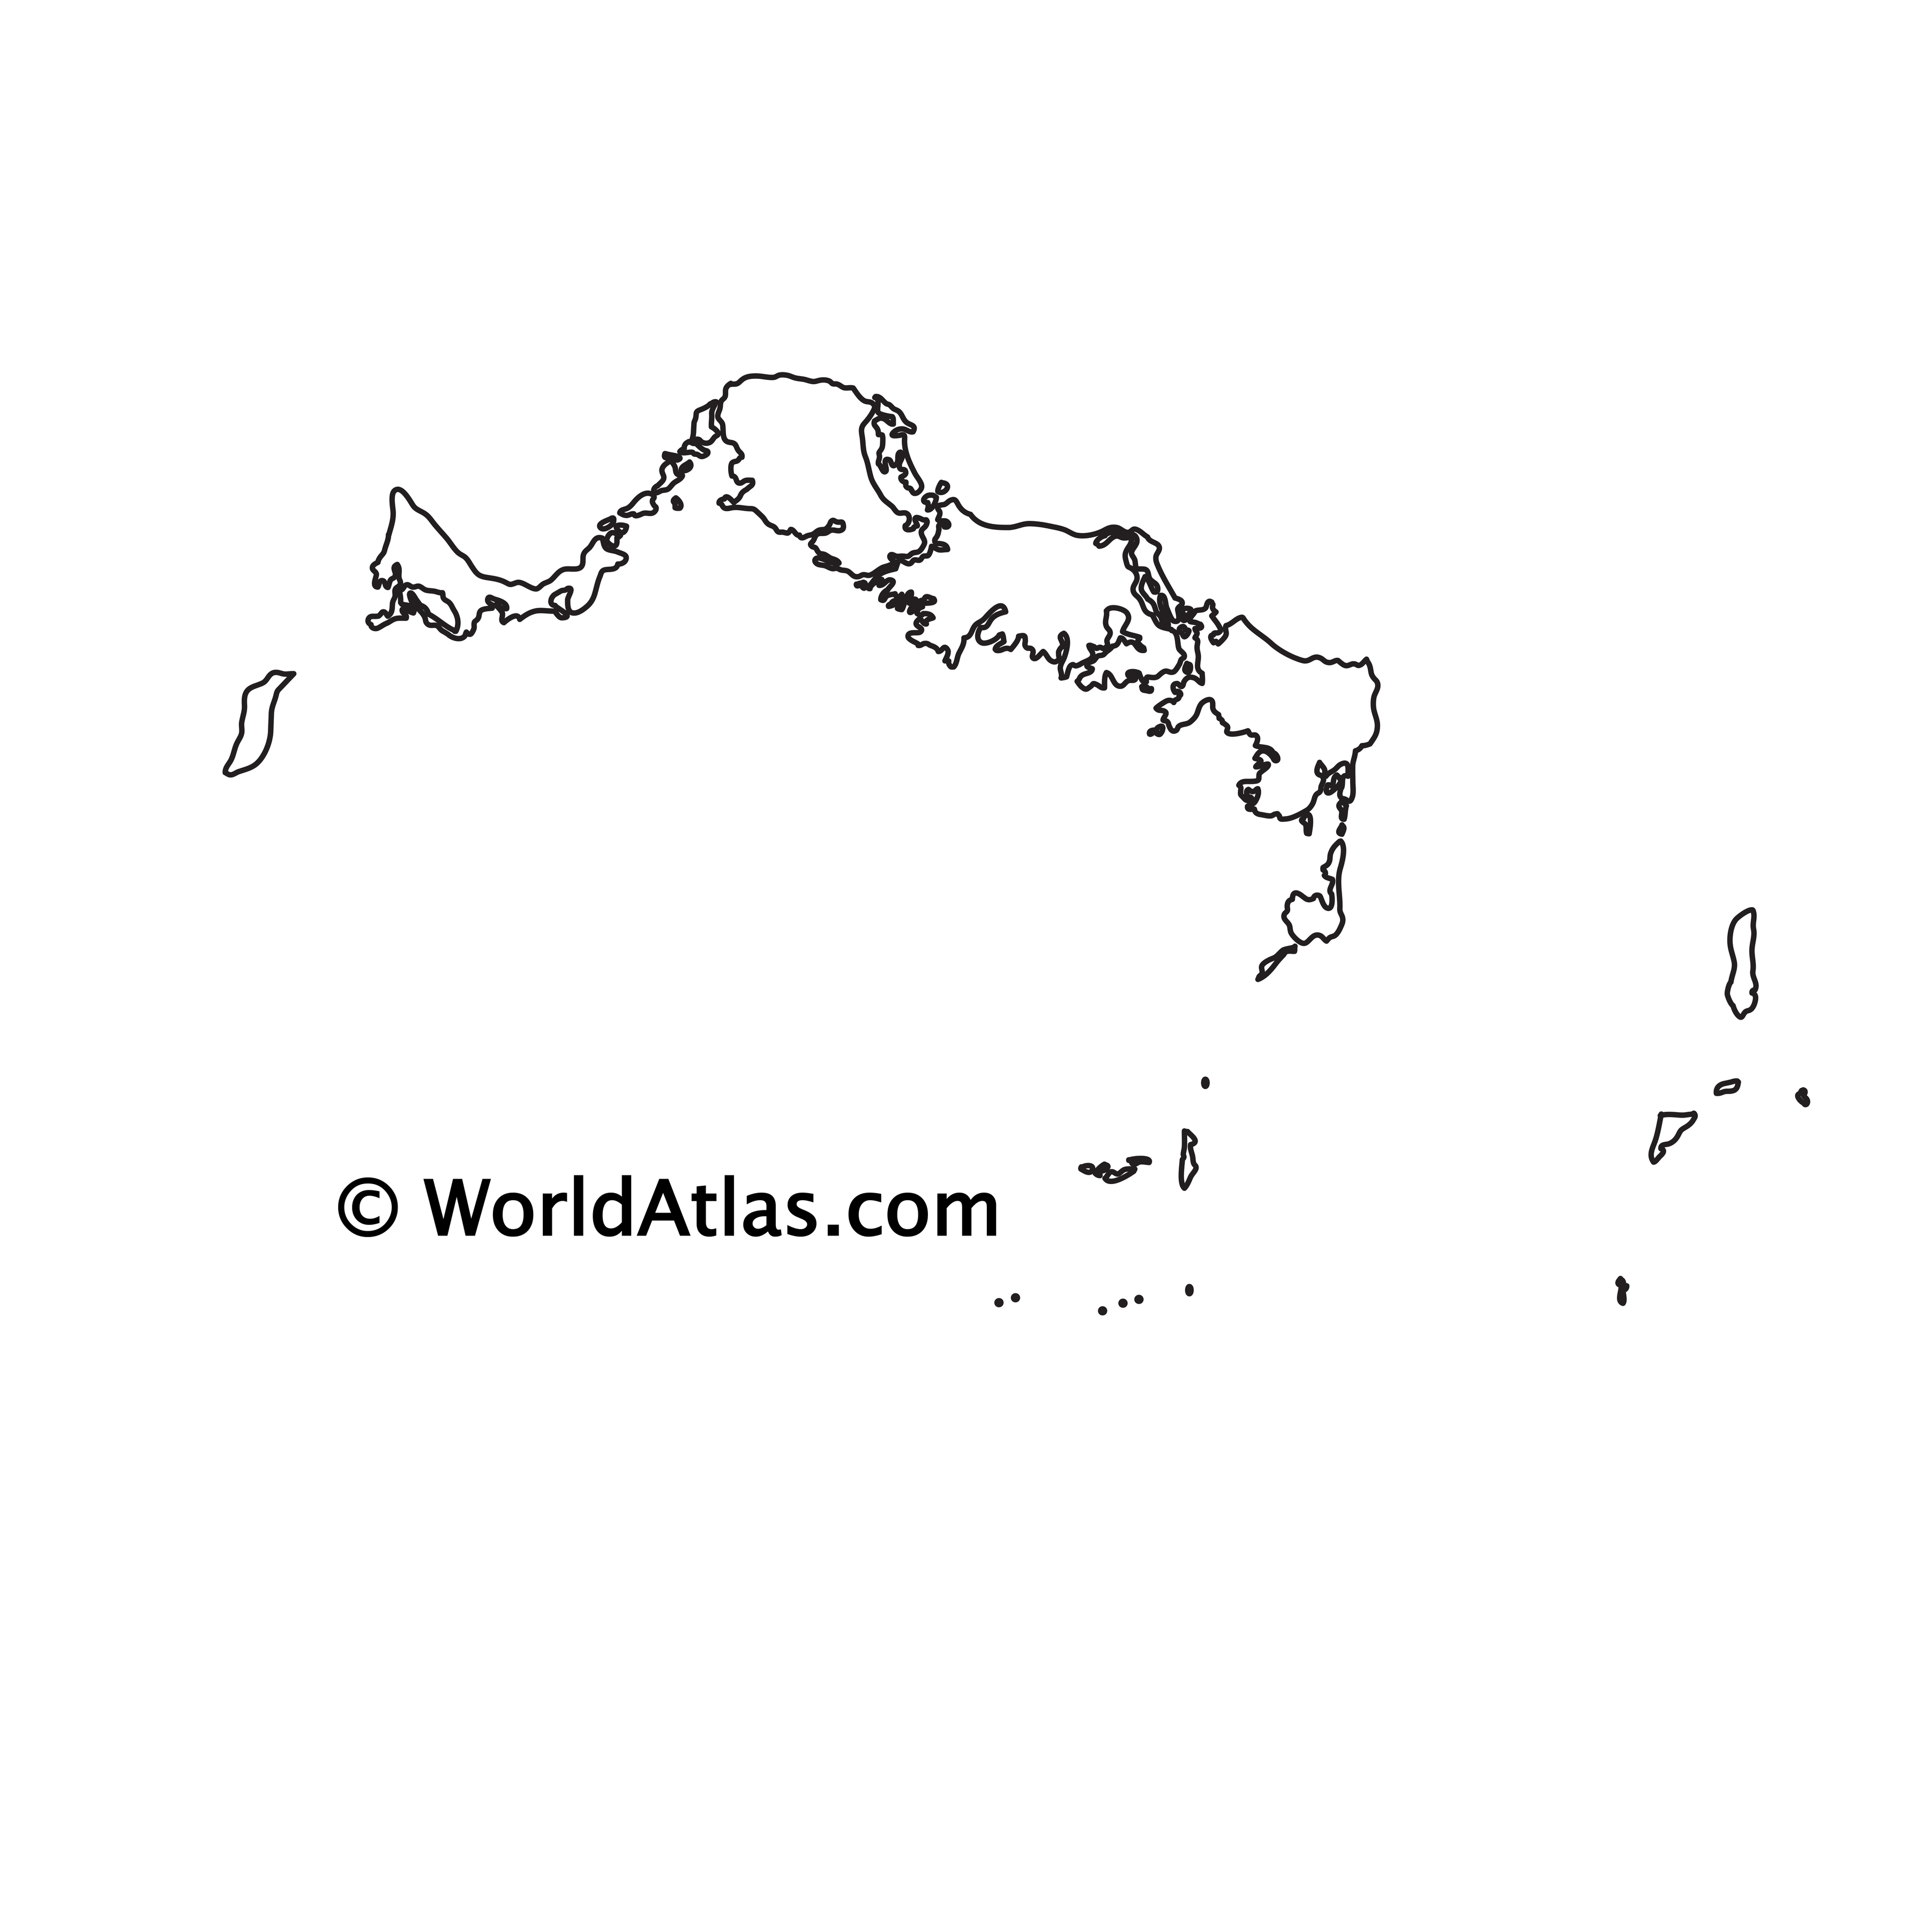 Blank Outline Map of Turks and Caicos